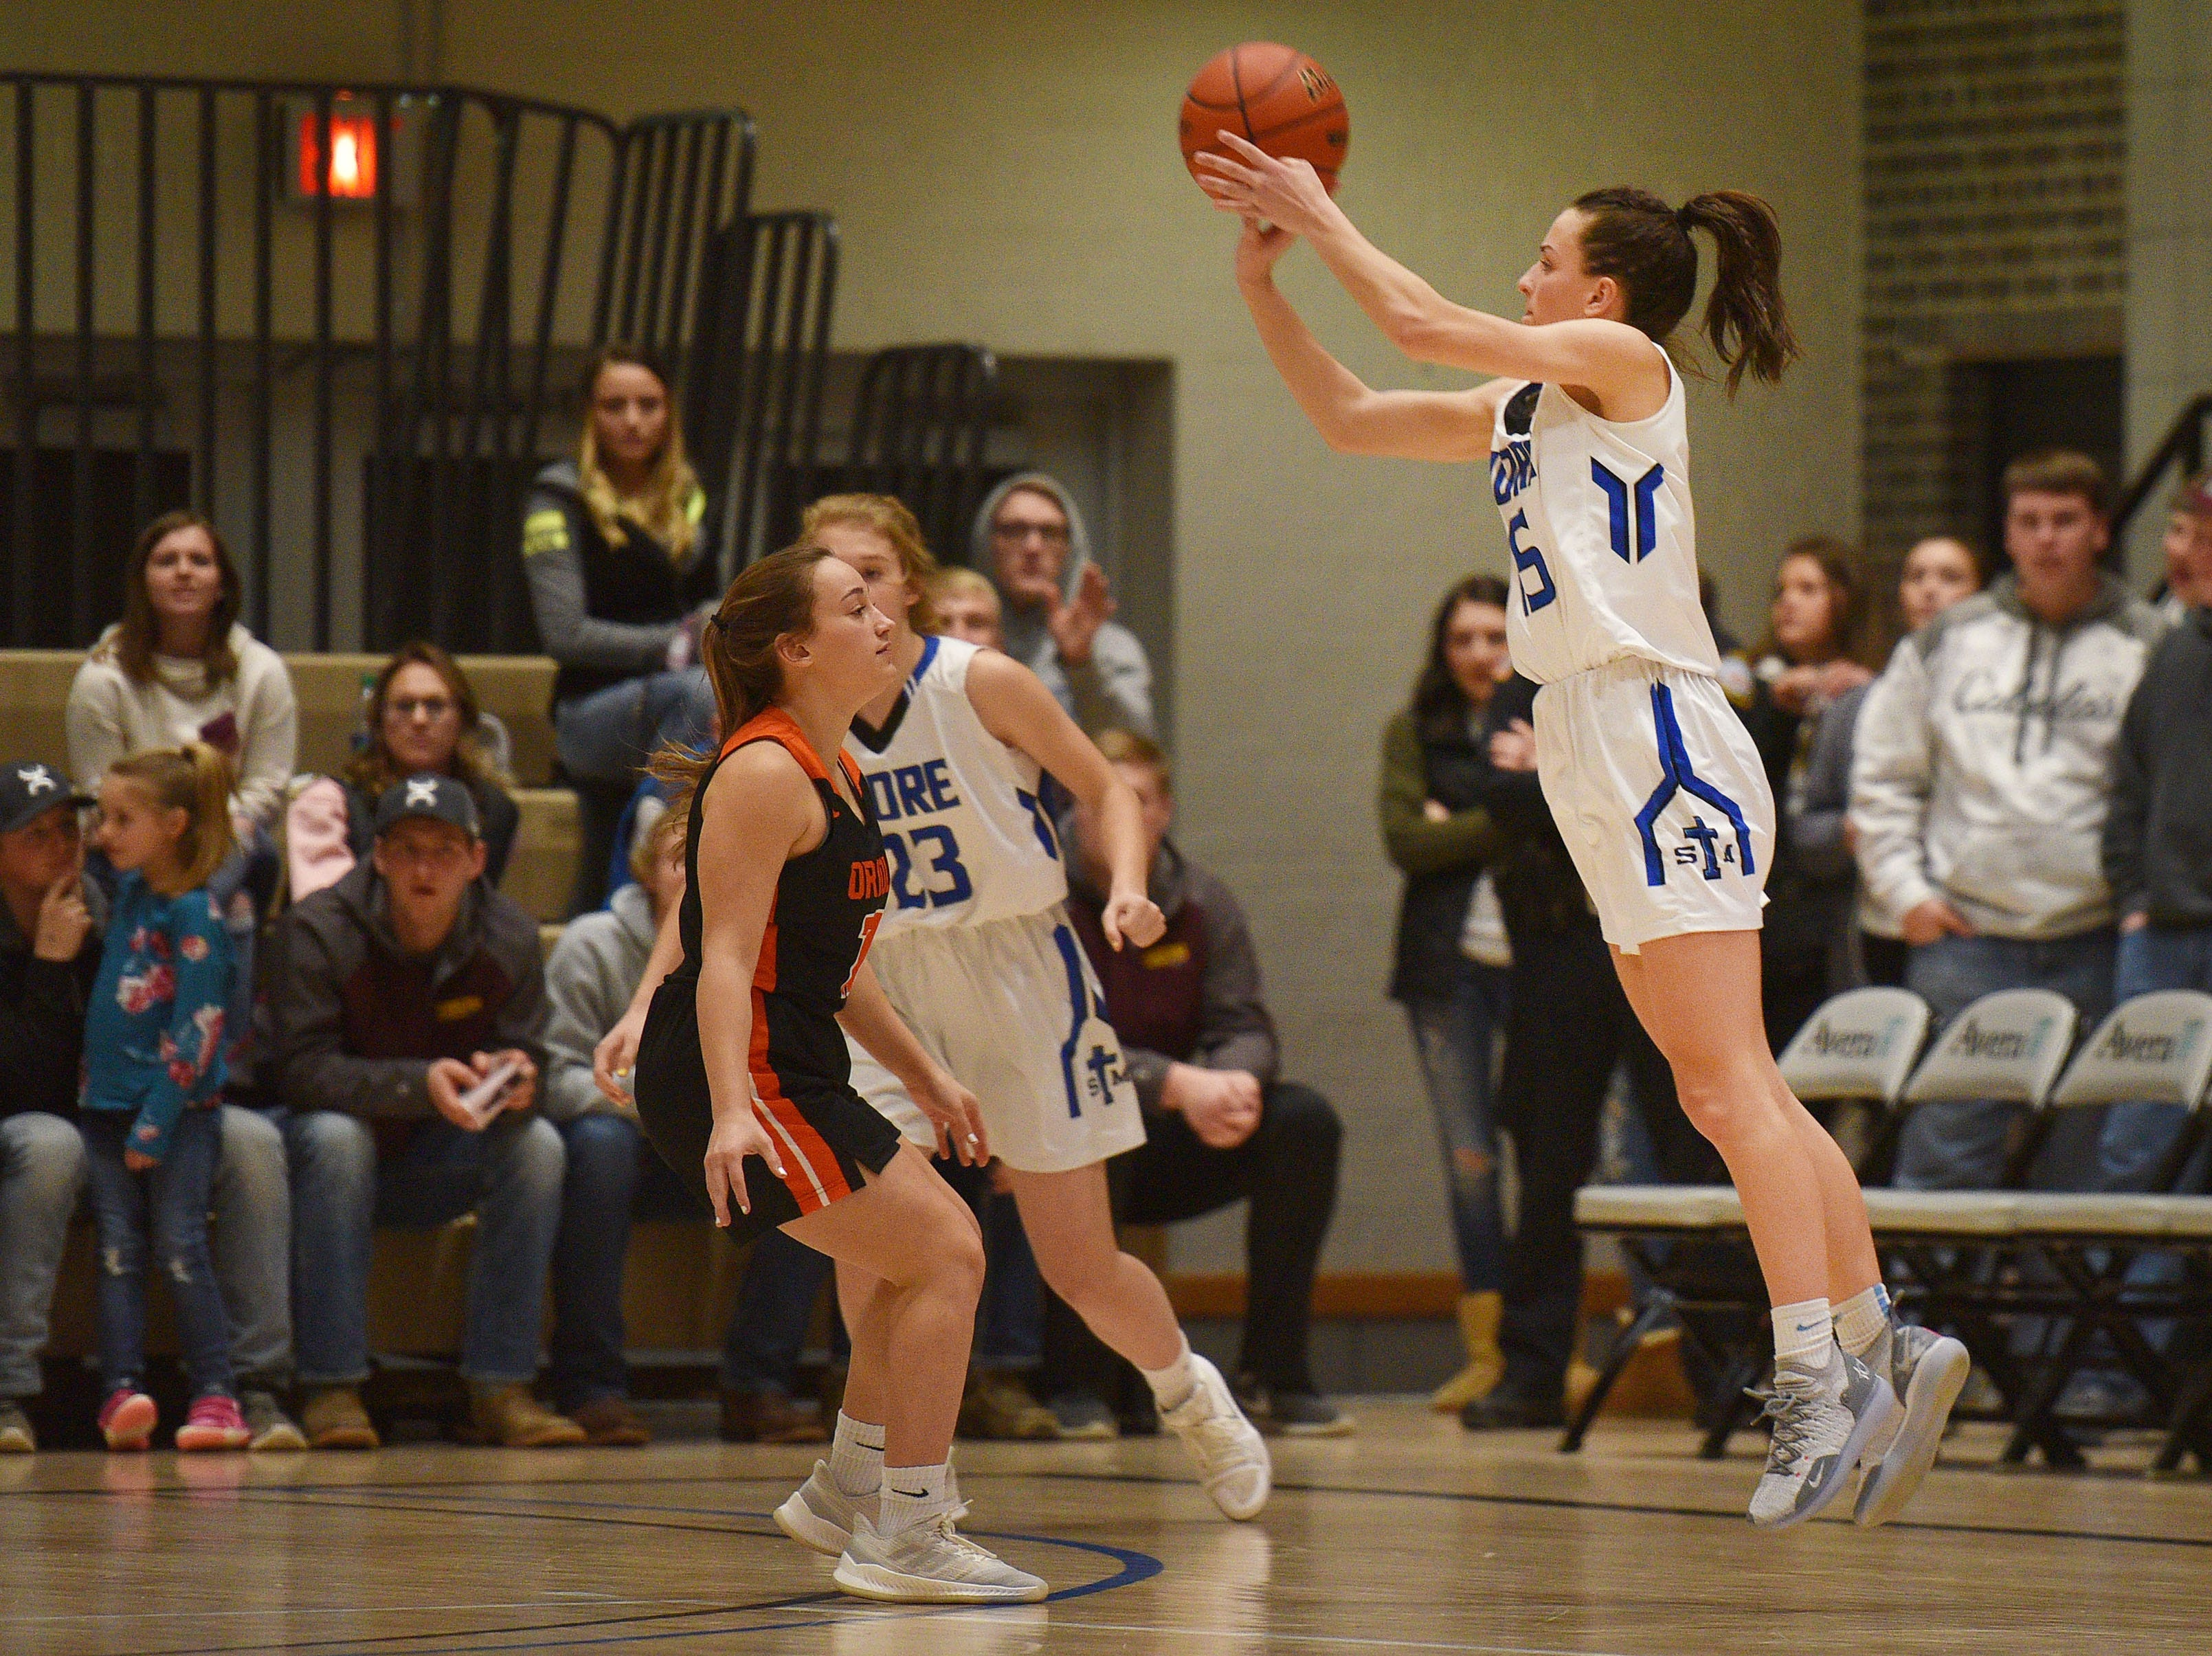 St. Thomas More's Ciara Benson attempts to score against Lennox in the Hanson Girls Classic Saturday,  Jan. 12, in Mitchell.